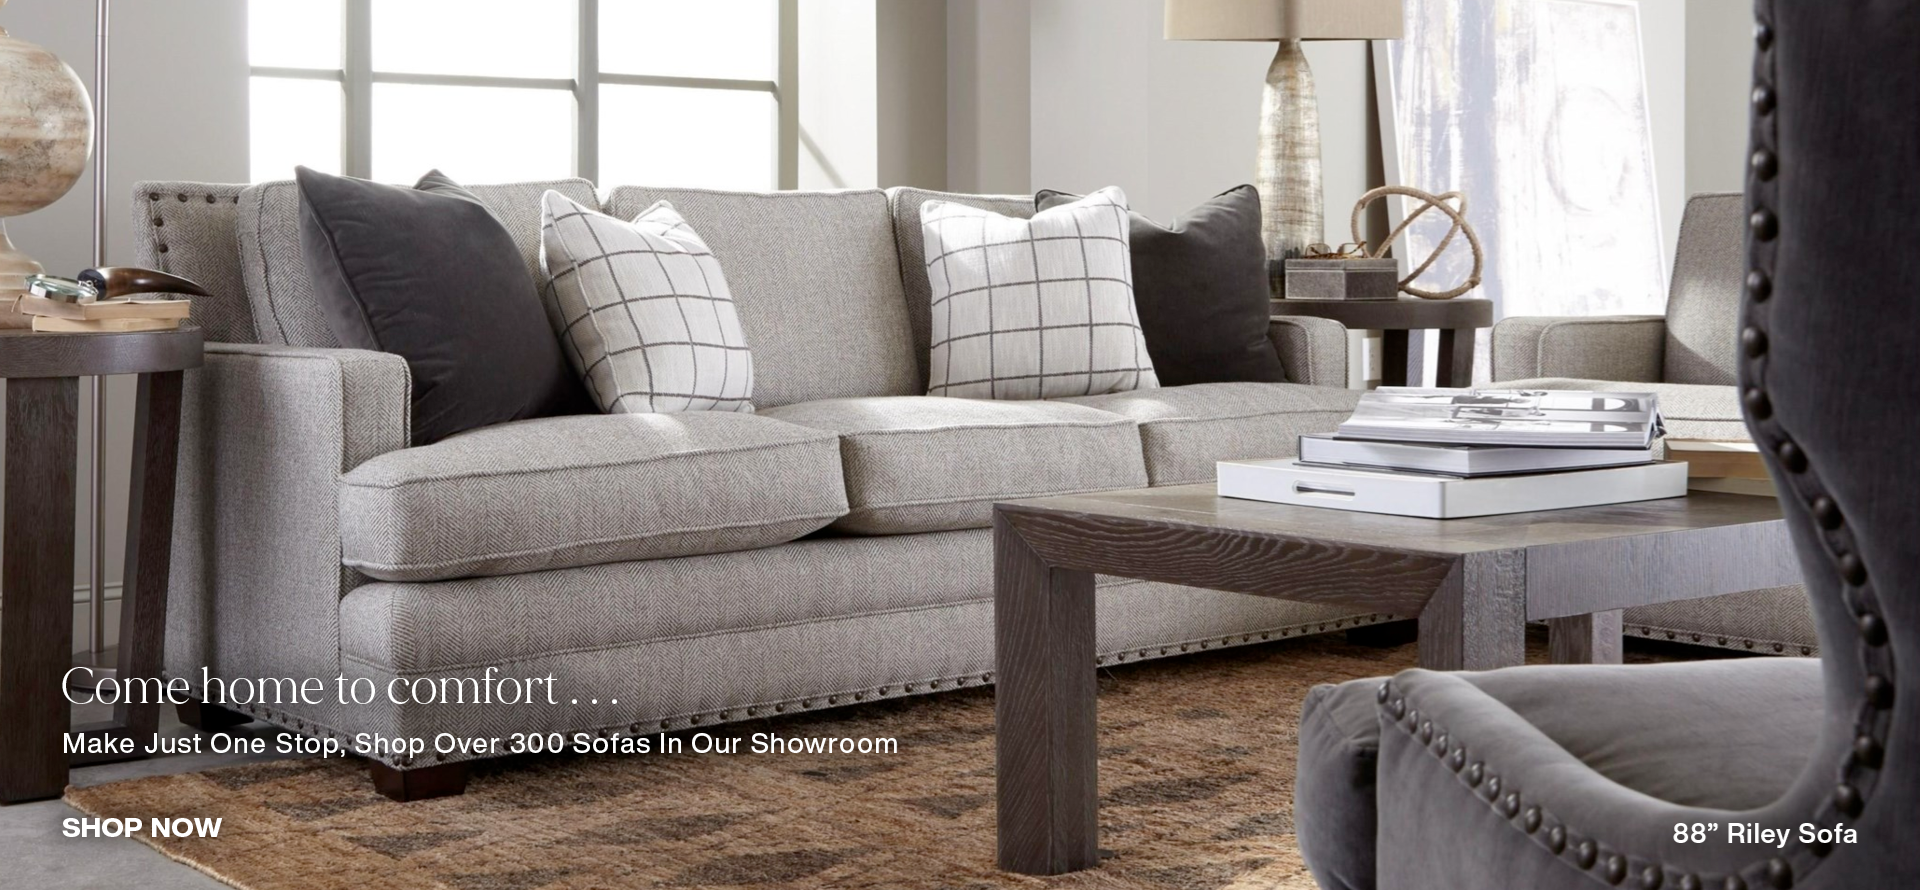 Create a space you'll love, shop over 300 sofas in our showroom